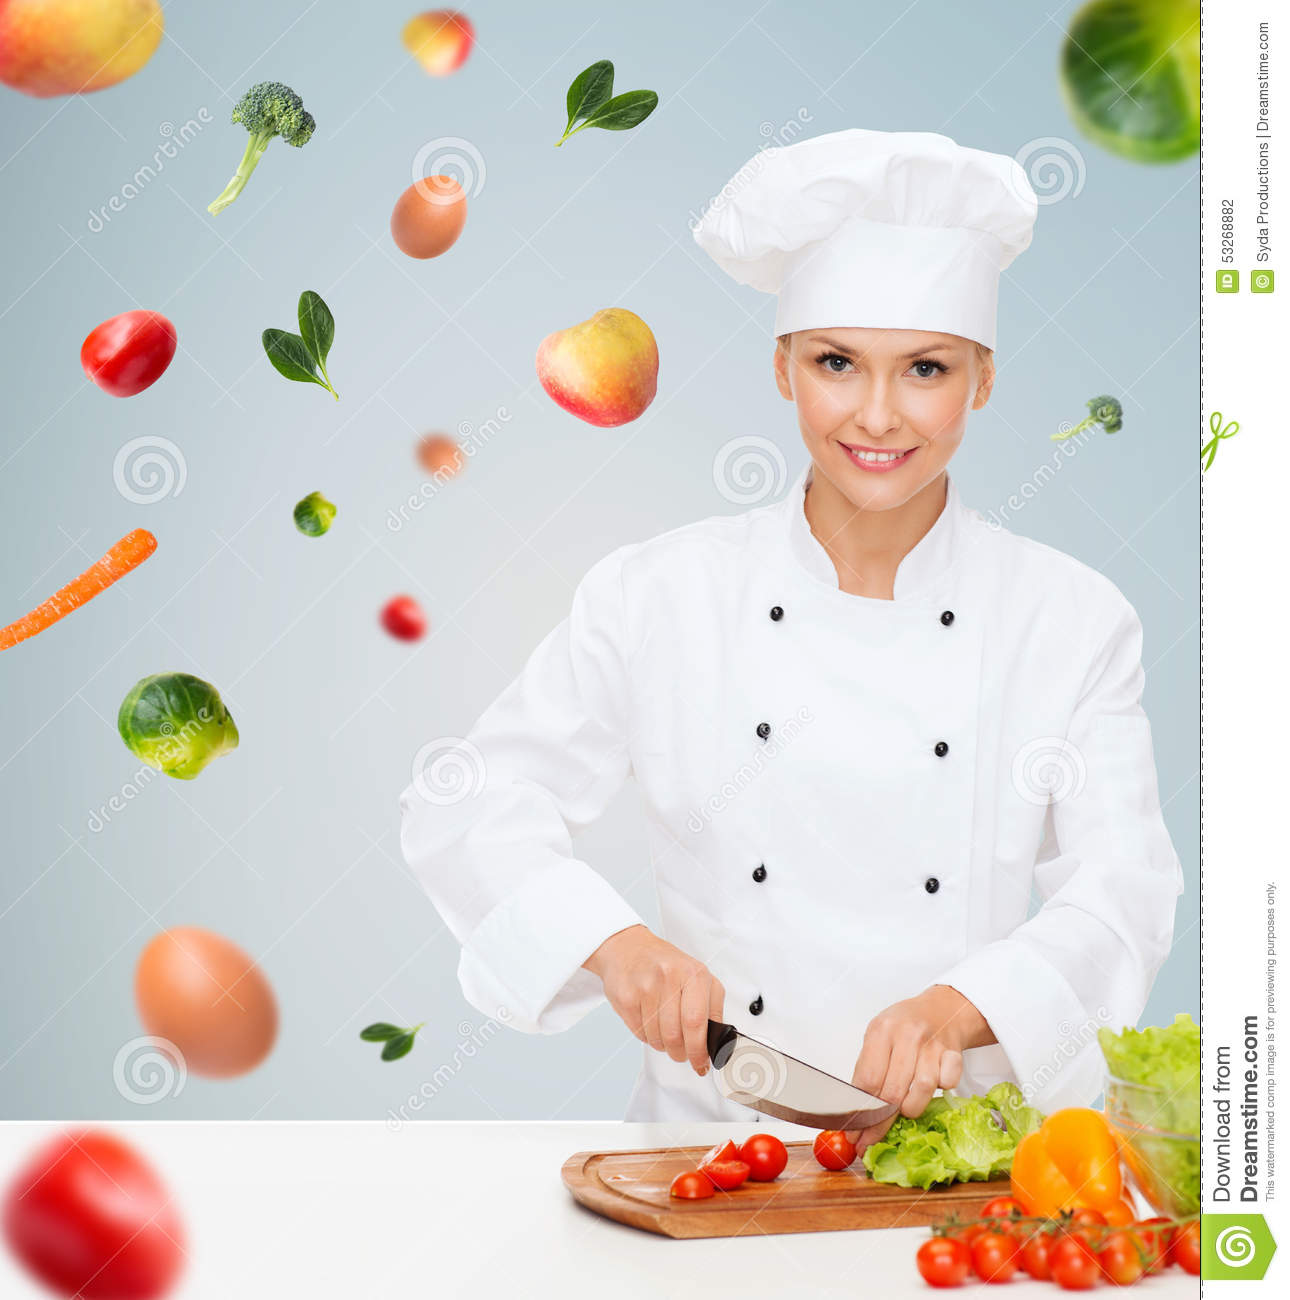 Smiling Female Chef Chopping Vegetables Stock Photo ...